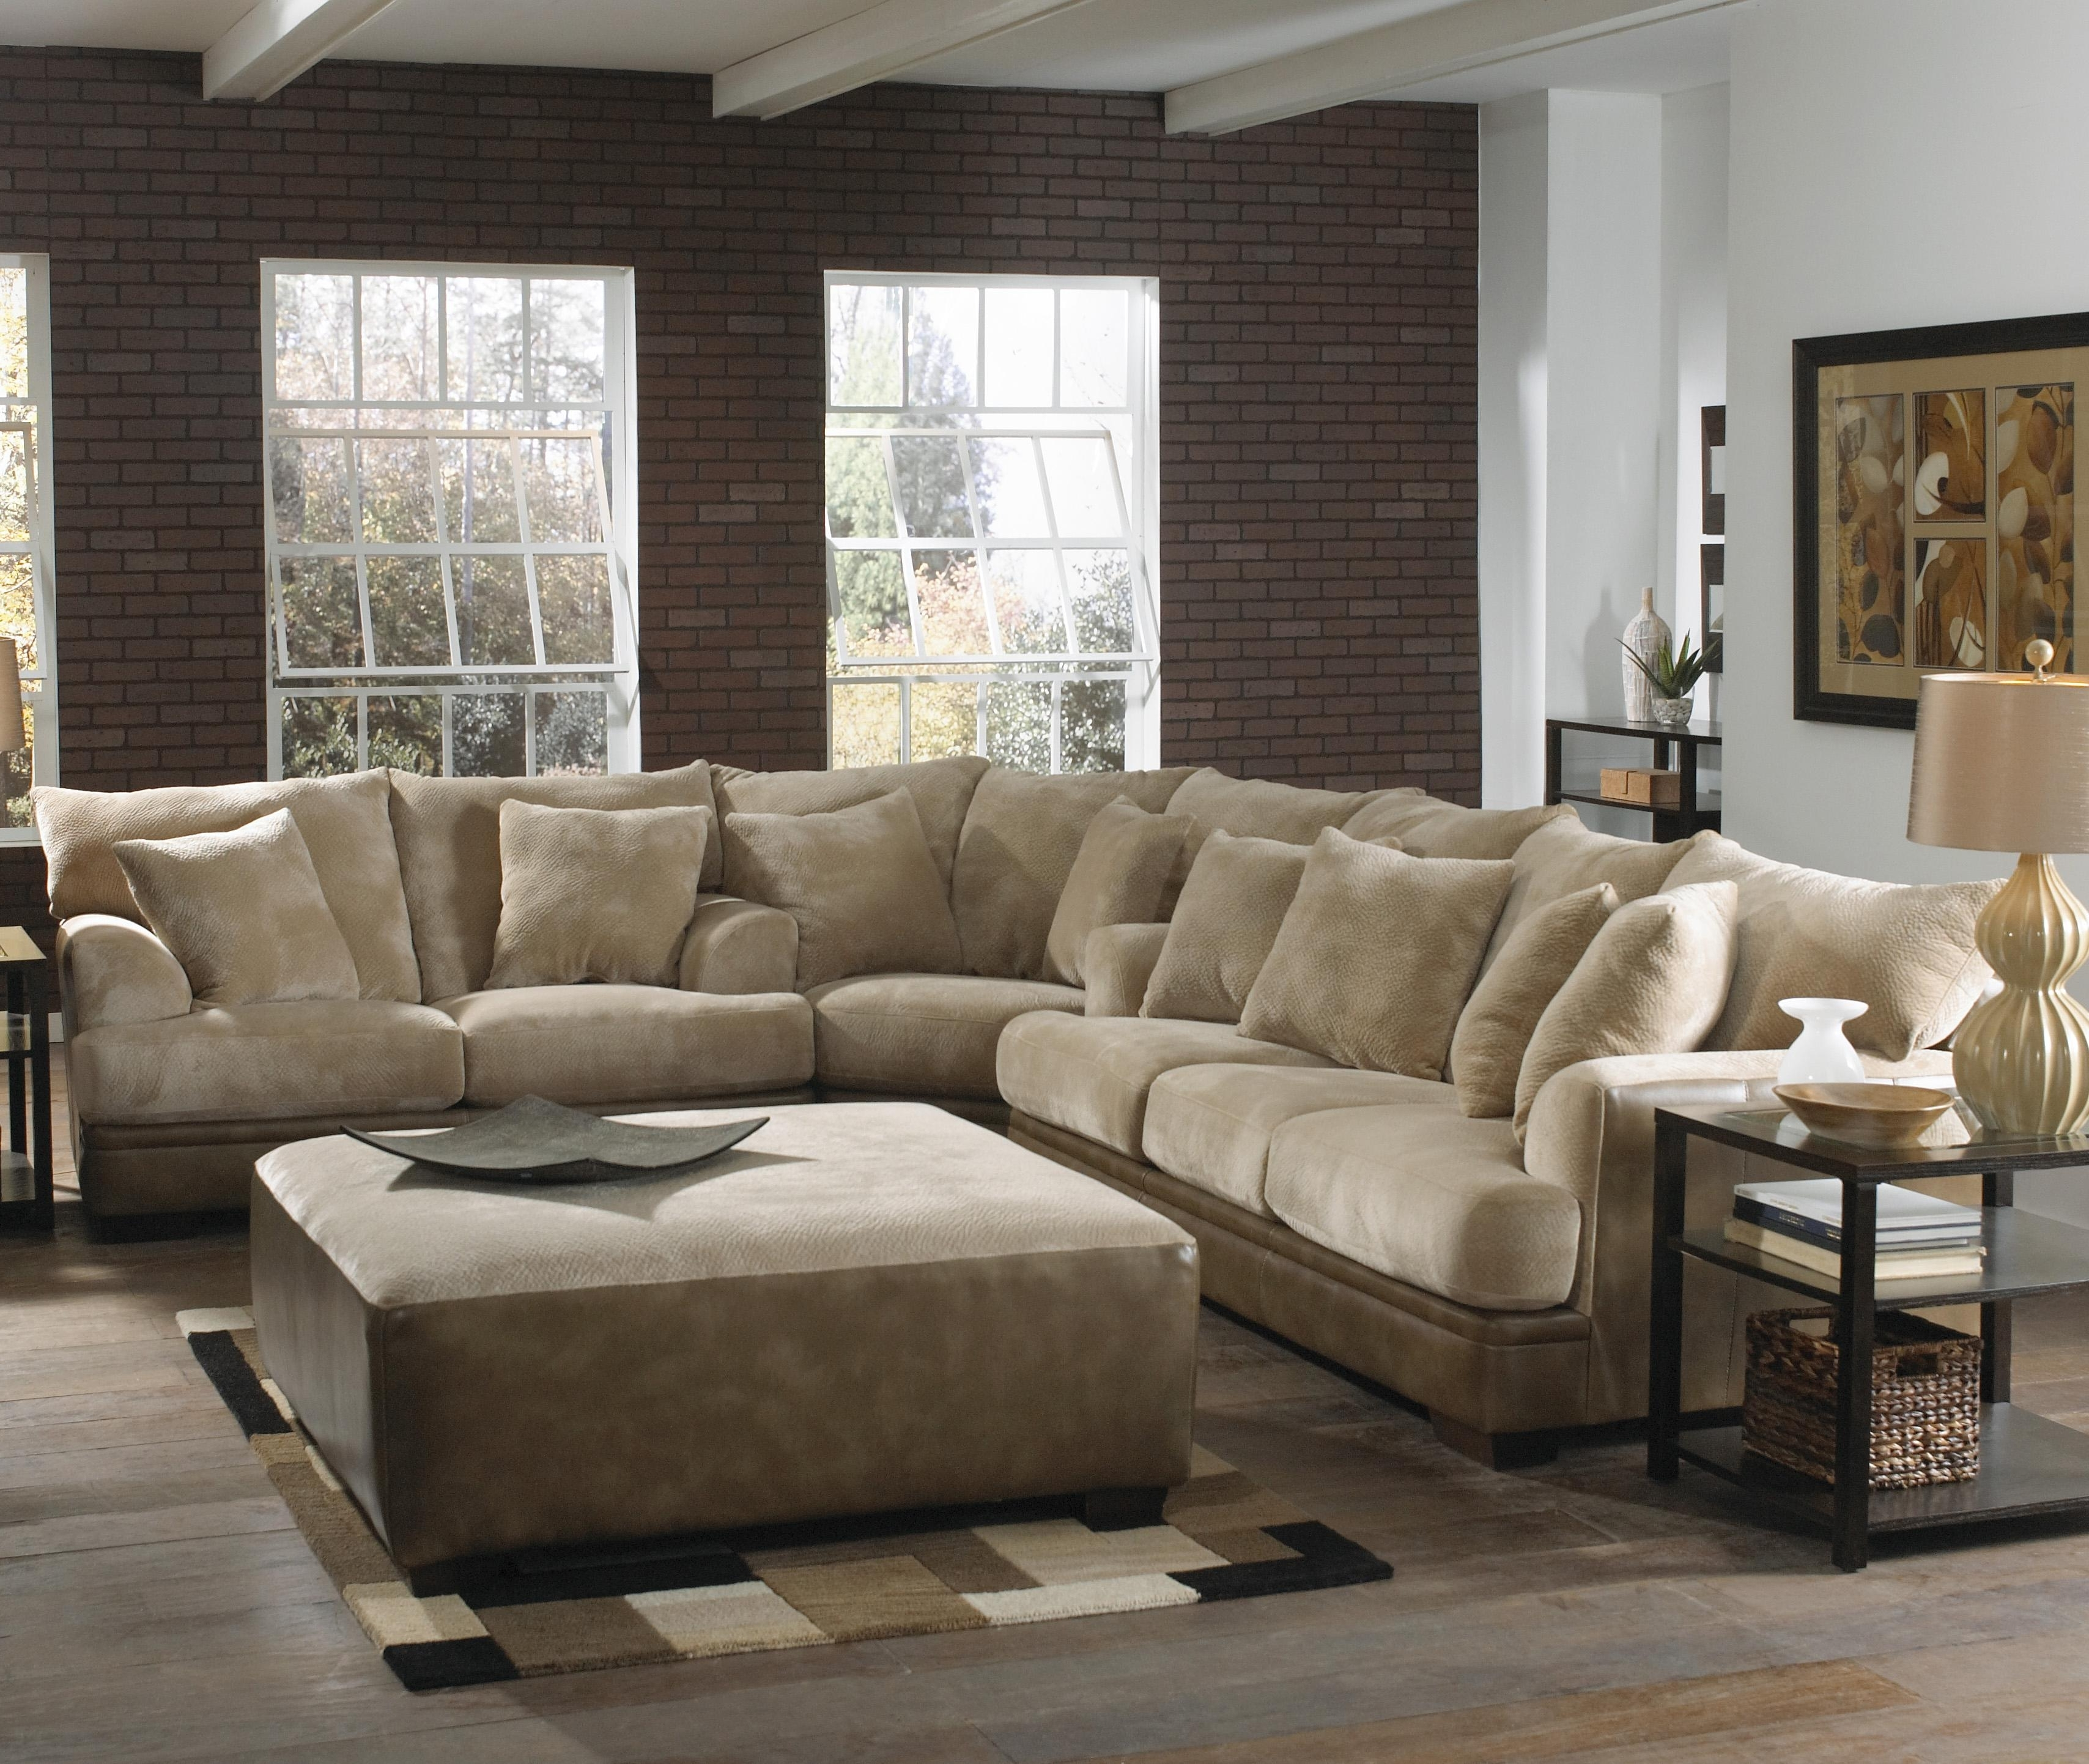 Most Popular Marvelous Large Sectional Sofa With Ottoman For Your Sofas Amazing With Regard To Couches With Large Ottoman (View 10 of 20)